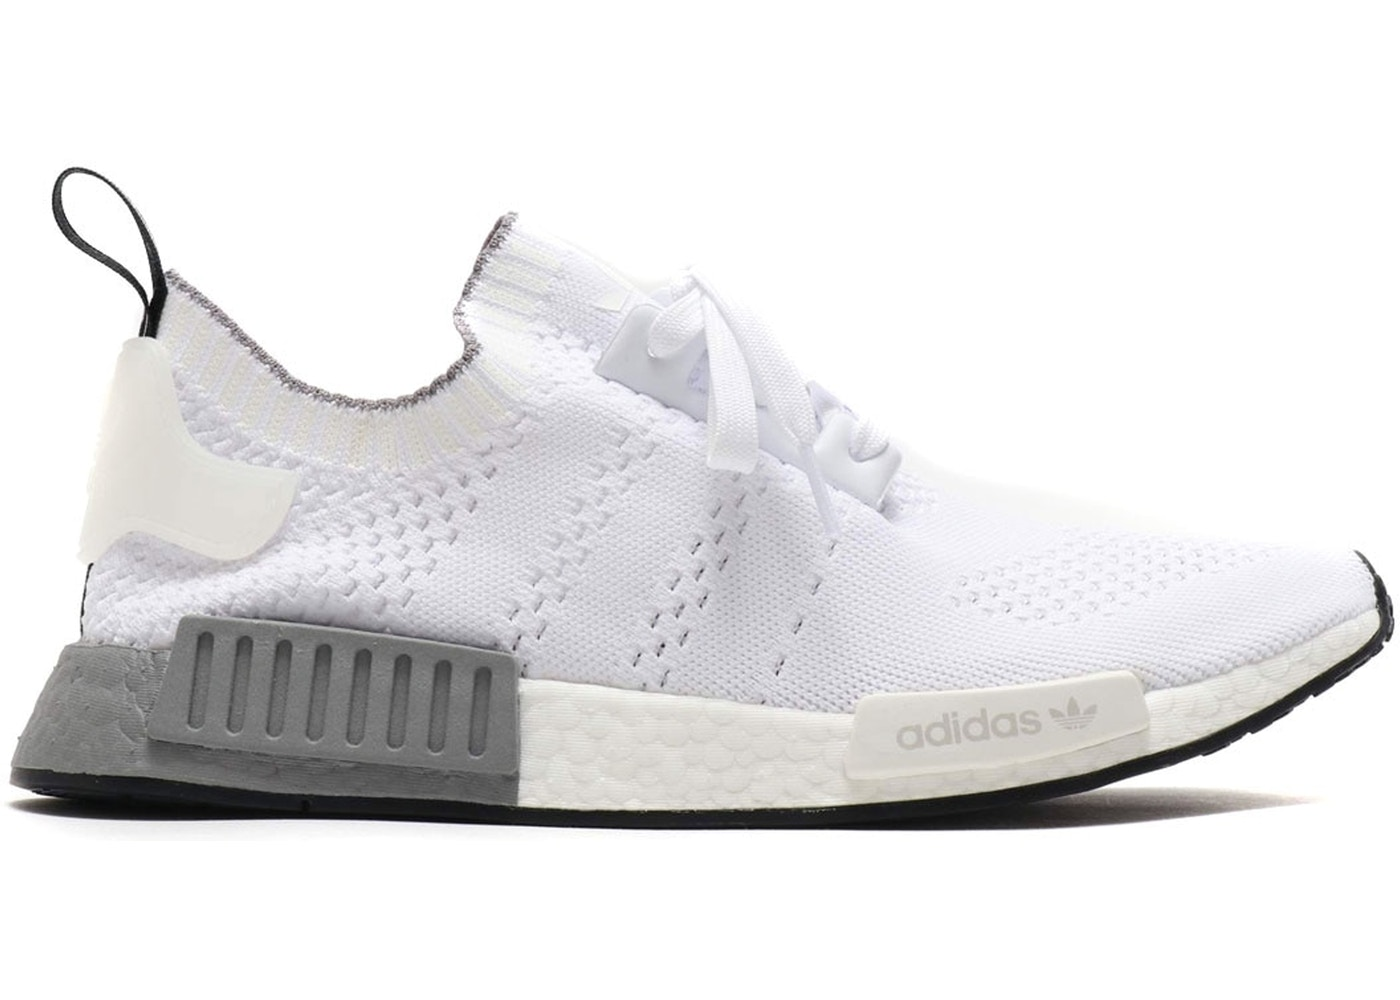 28b15206 adidas NMD Shoes - Release Date